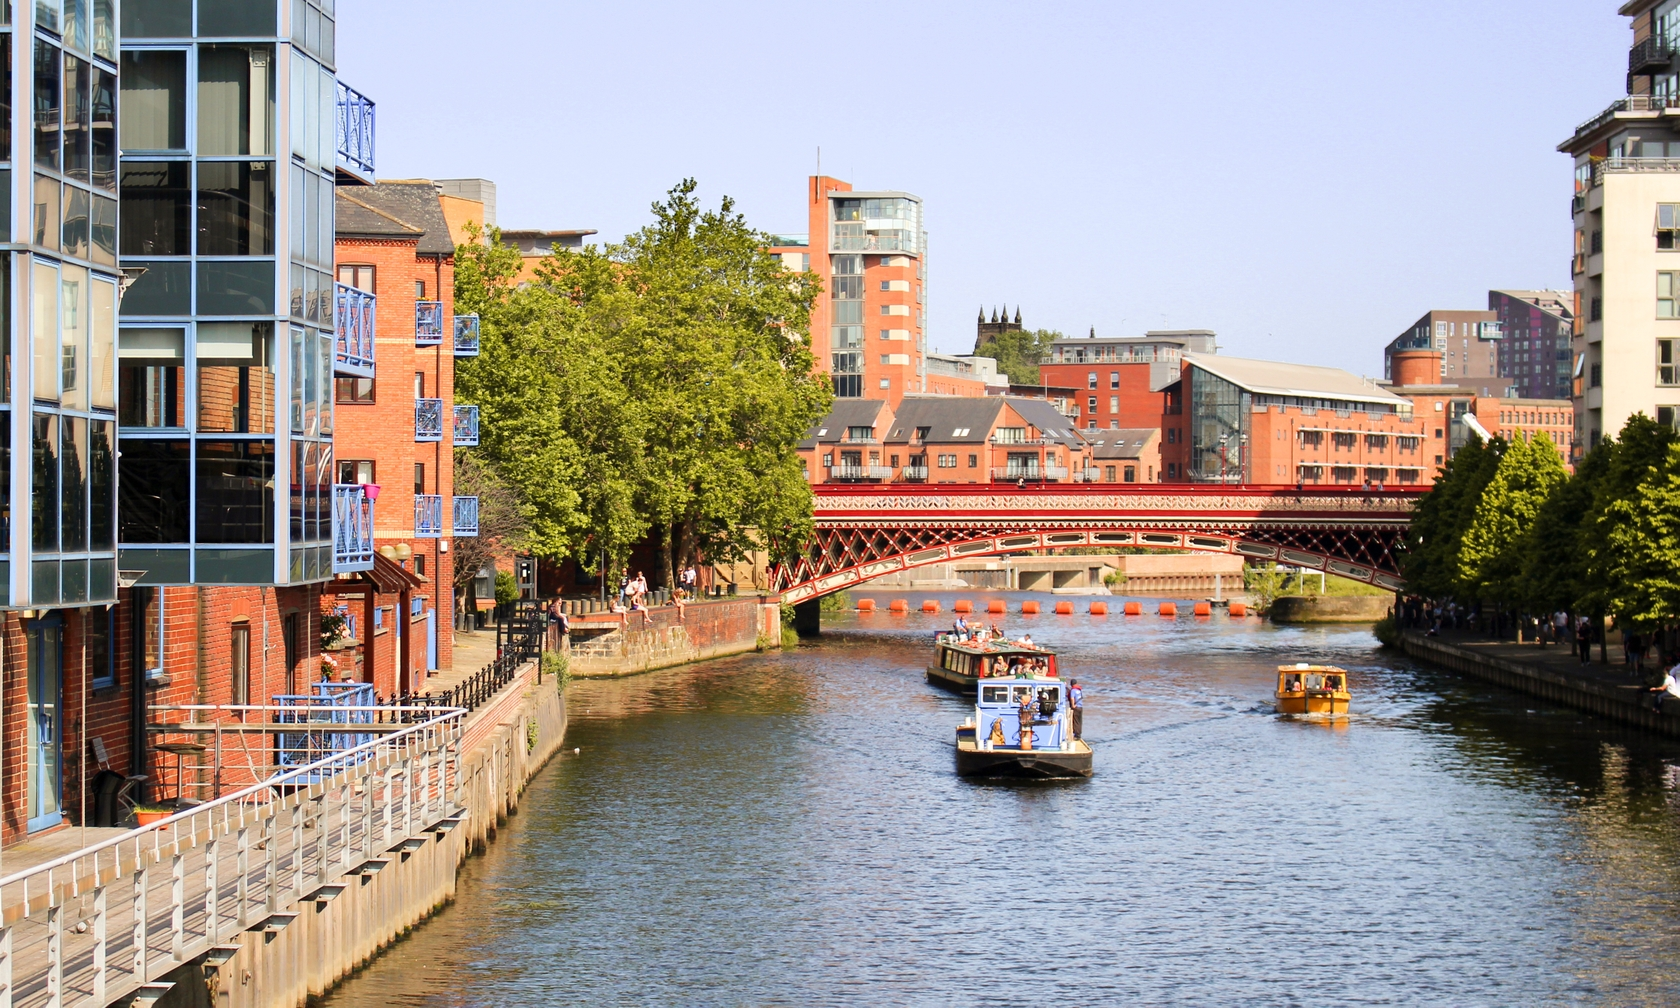 Holiday cottages in Leeds